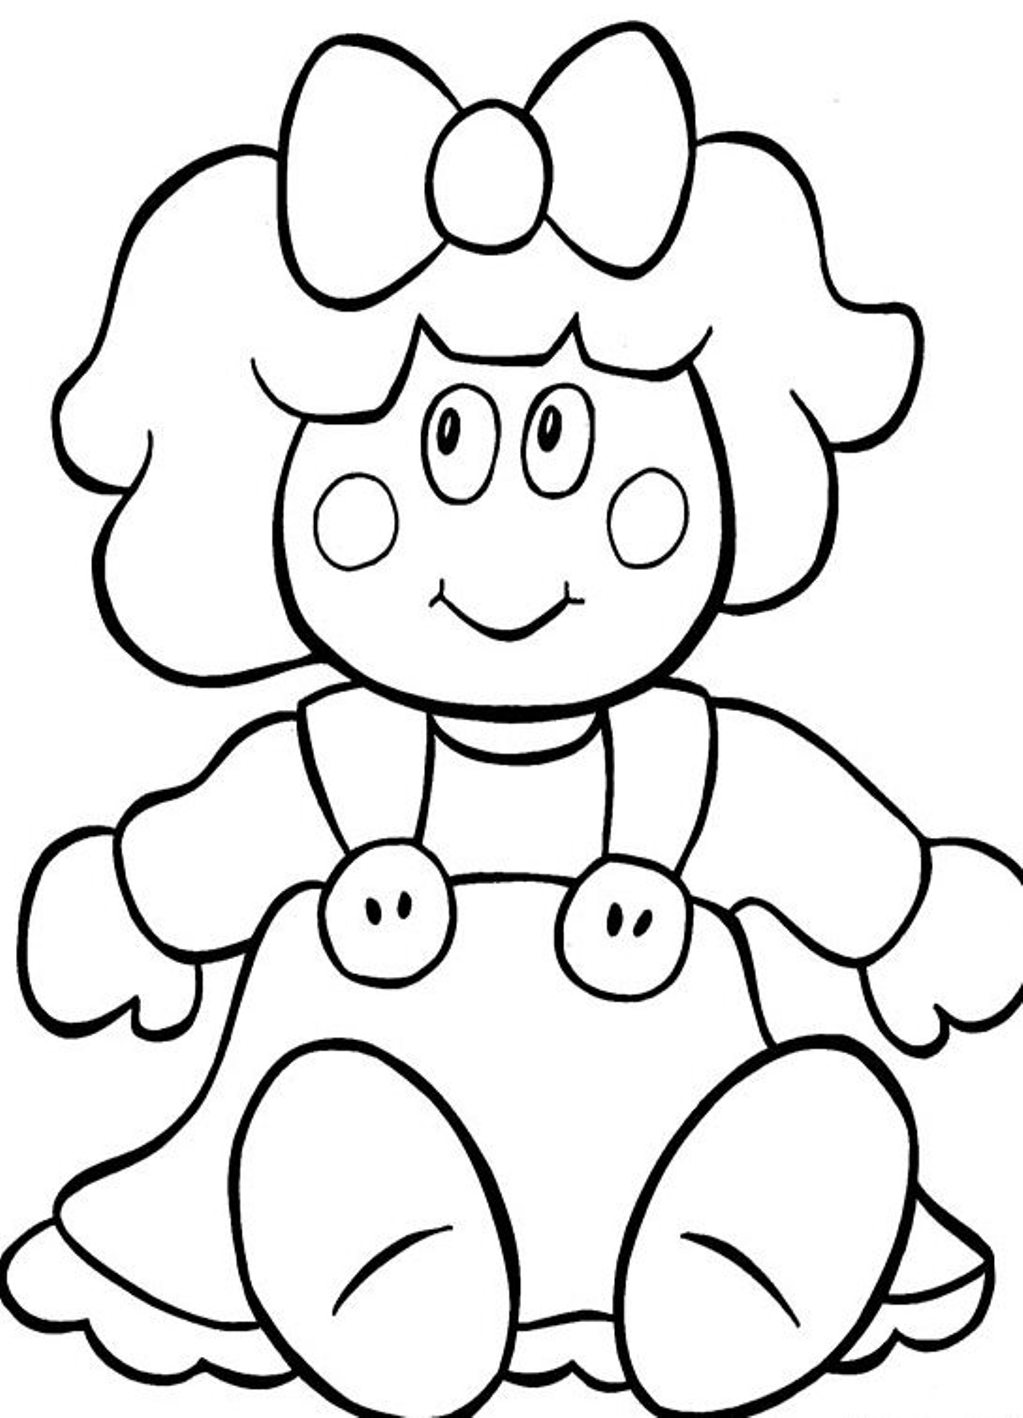 coloring sheet coloring pictures for kids jungle coloring pages best coloring pages for kids coloring coloring sheet pictures for kids